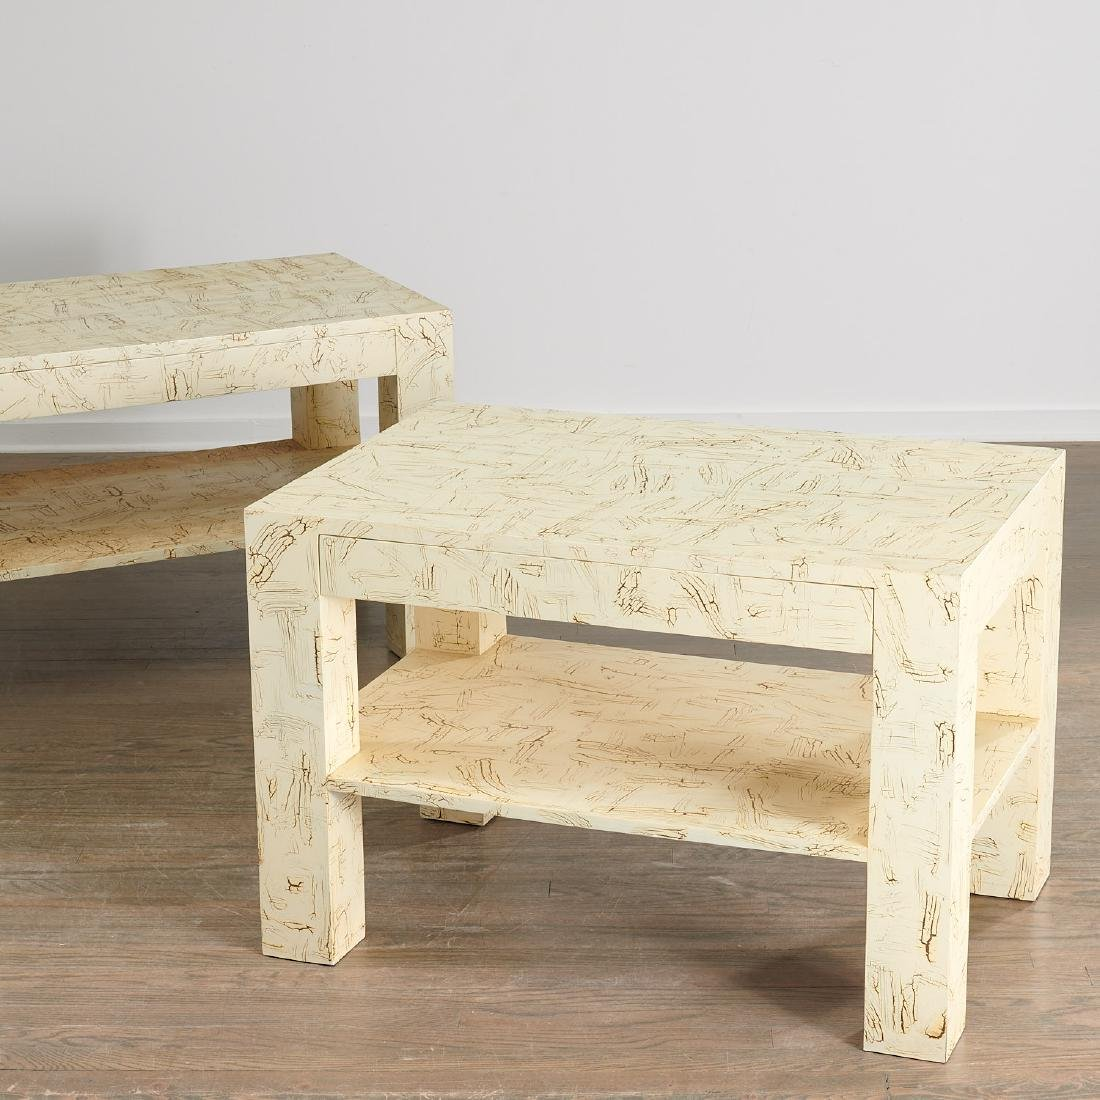 Pair Juan Pablo Molyneux tiered side tables